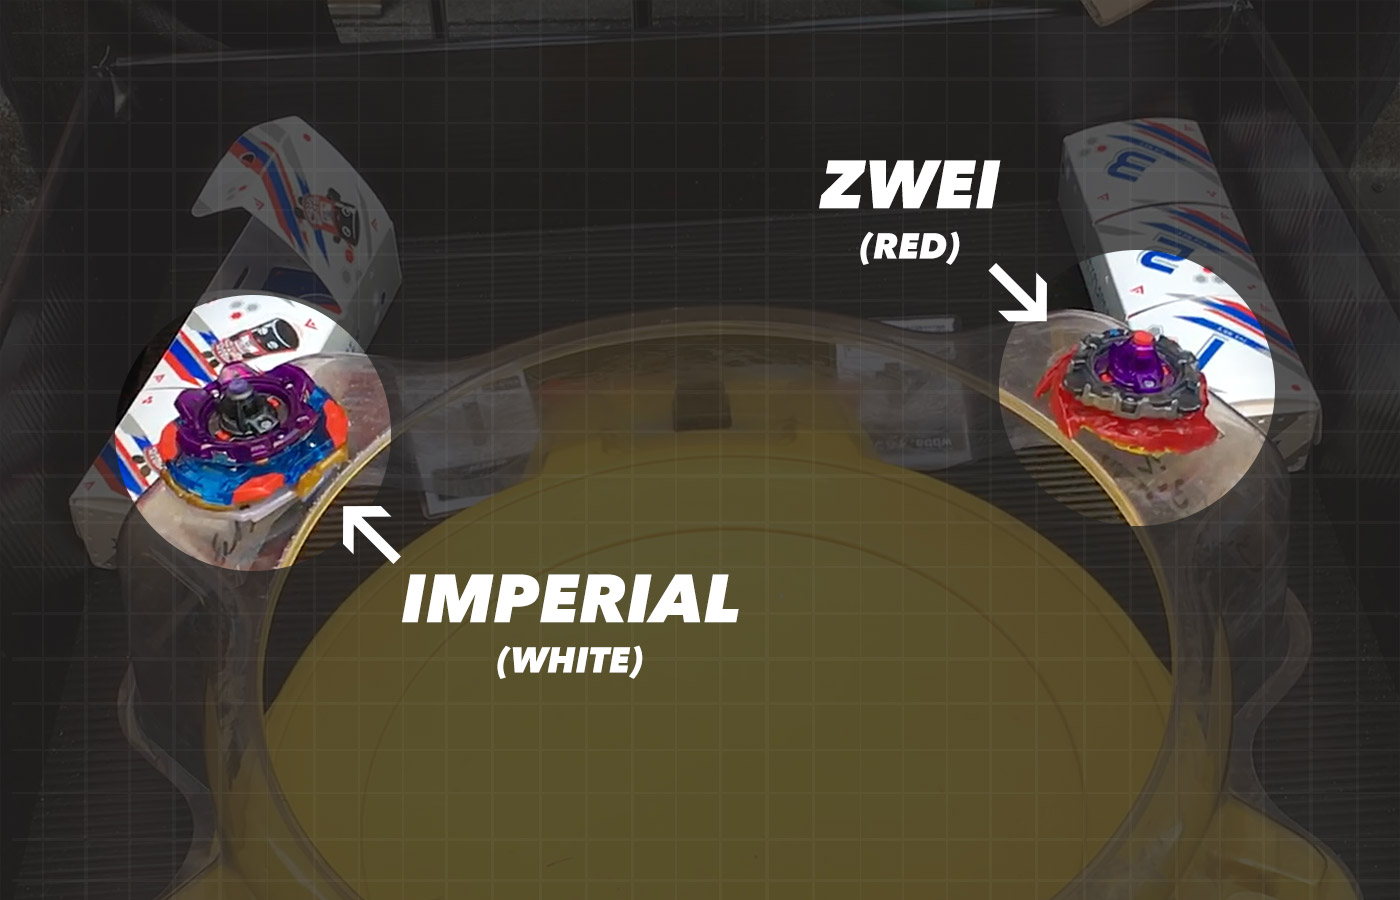 Screenshot of Beyblade battle video illustrating which Beyblade is Imperial and which is Zwei